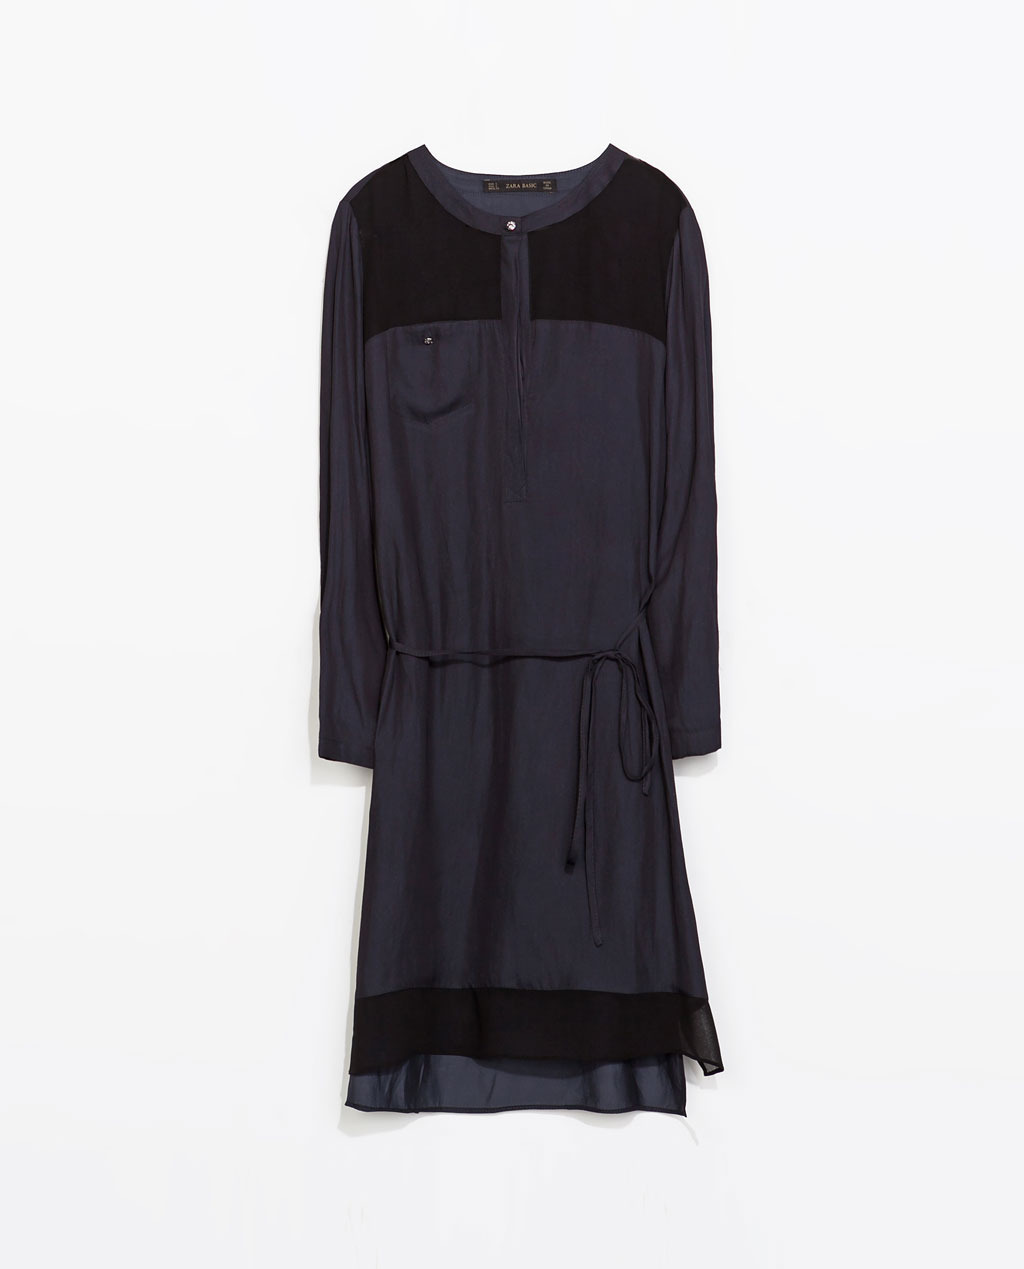 Tunic Dress - style: tunic; length: mid thigh; neckline: round neck; fit: loose; pattern: plain; waist detail: belted waist/tie at waist/drawstring; predominant colour: black; occasions: casual, creative work; fibres: polyester/polyamide - 100%; sleeve length: long sleeve; sleeve style: standard; pattern type: fabric; texture group: other - light to midweight; season: s/s 2014; shoulder detail: sheer at shoulder; wardrobe: highlight